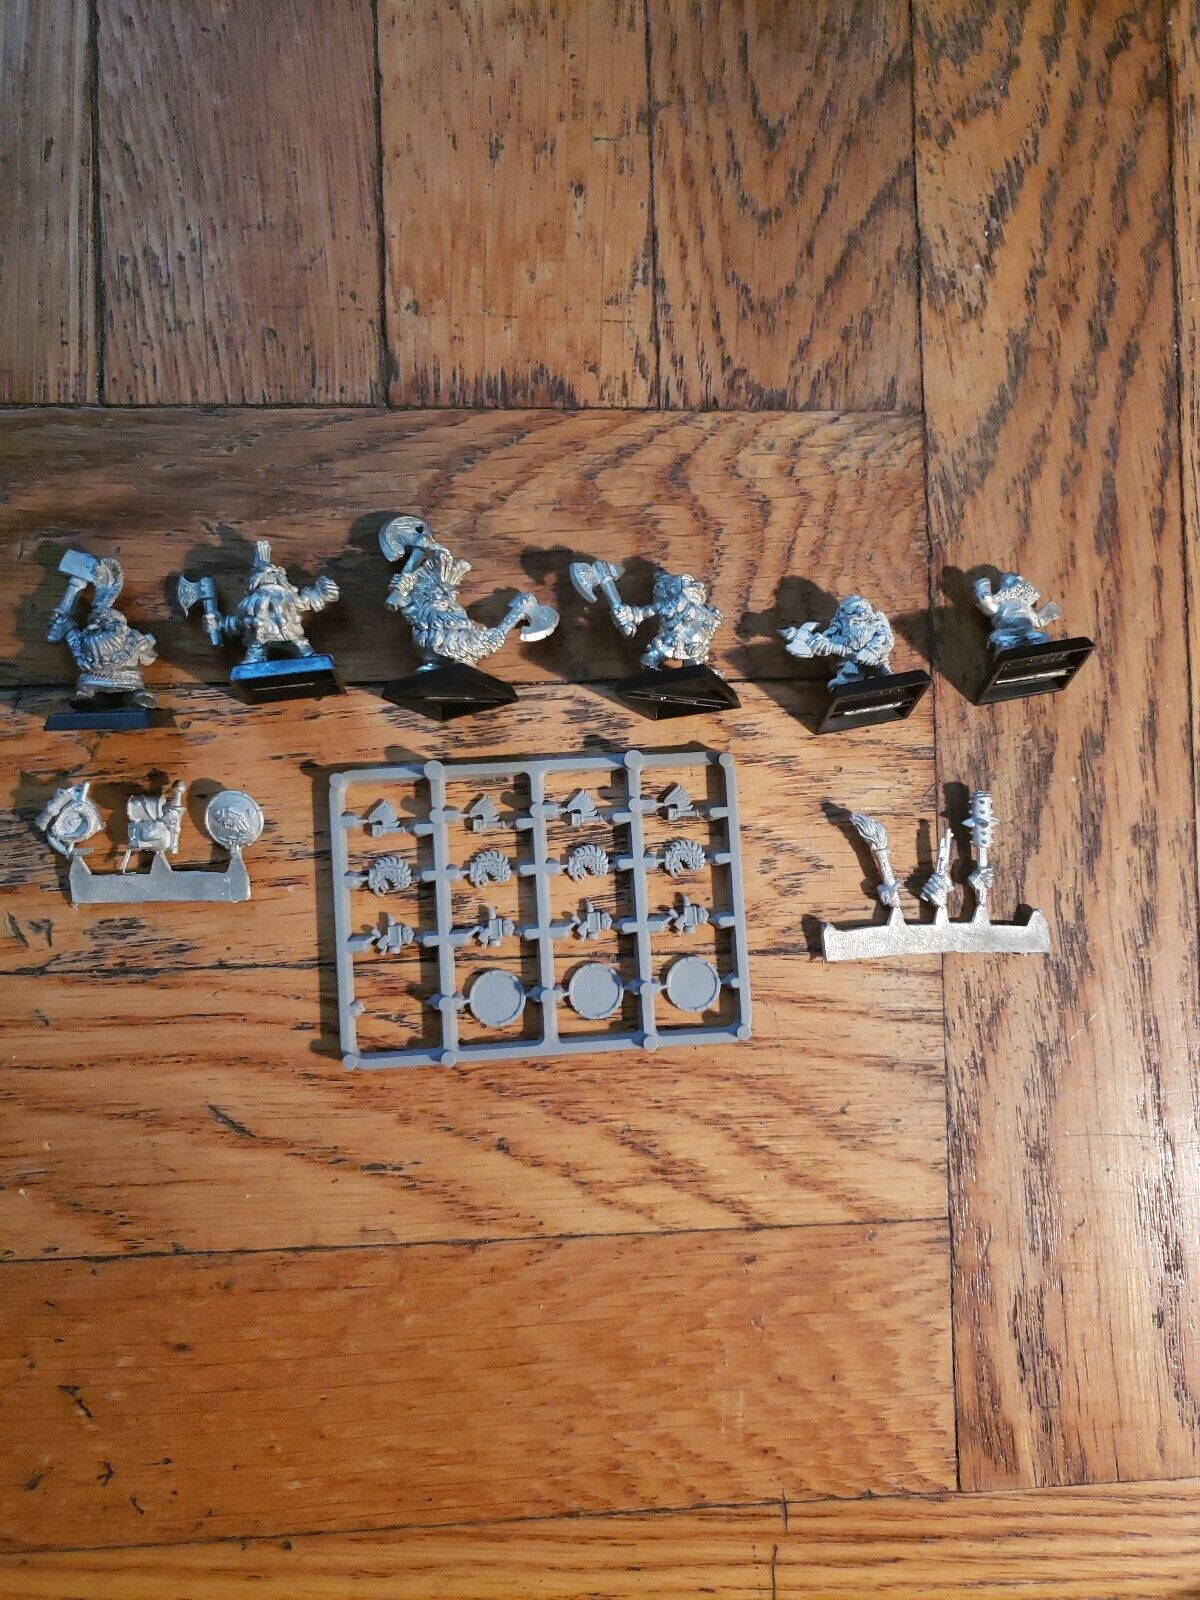 Games Workshop Miniatures  Lot de 6  nous offrons diverses marques célèbres